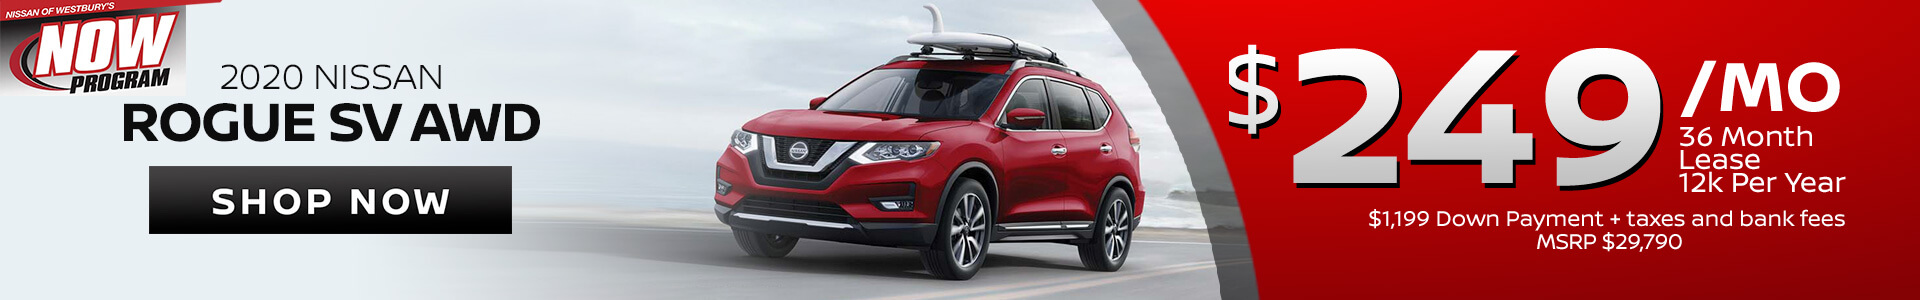 Nissan Rogue $249 Lease